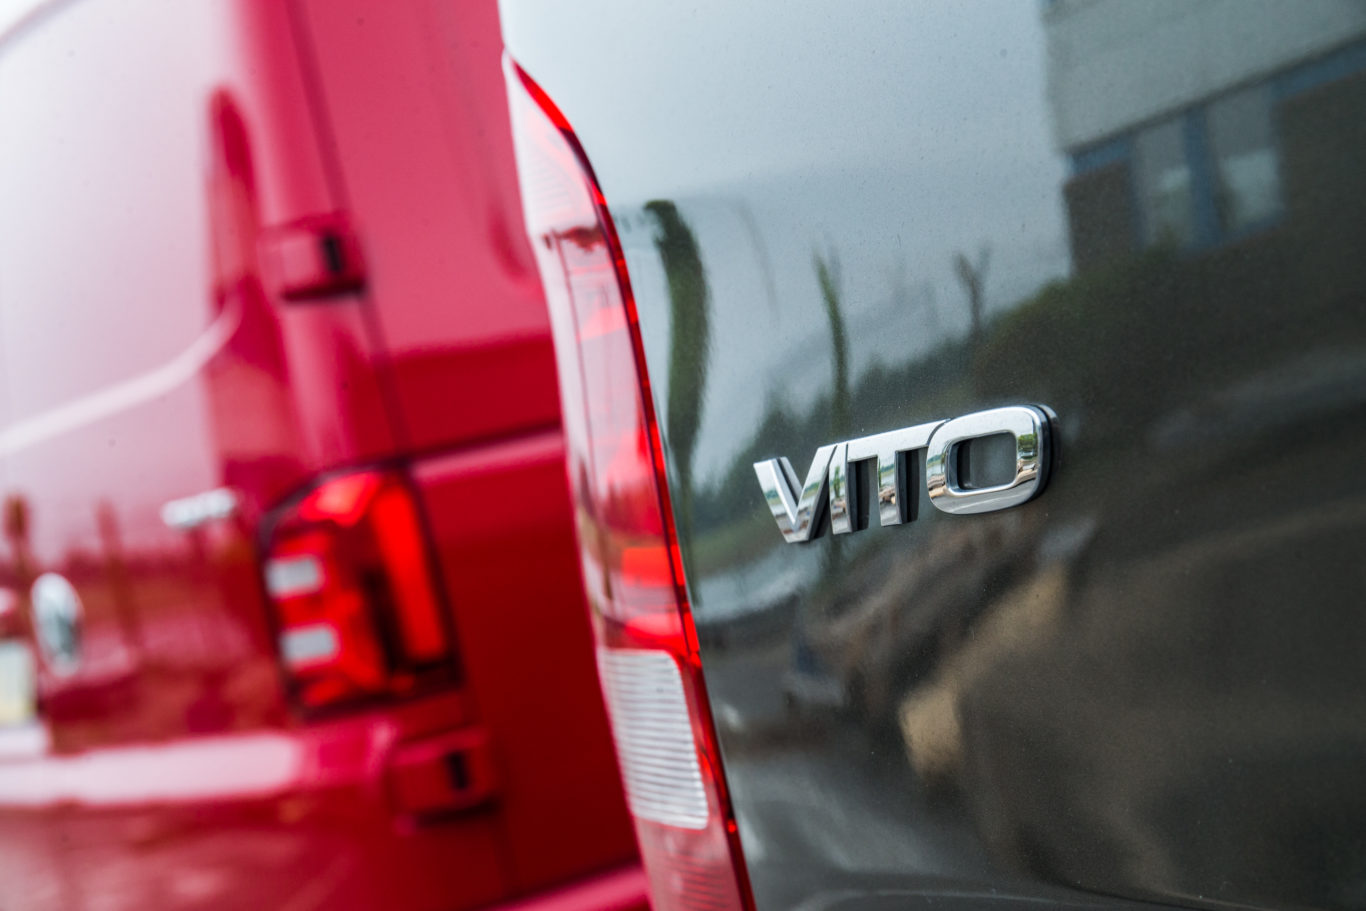 The Vito features the all-important Mercedes badge heritage